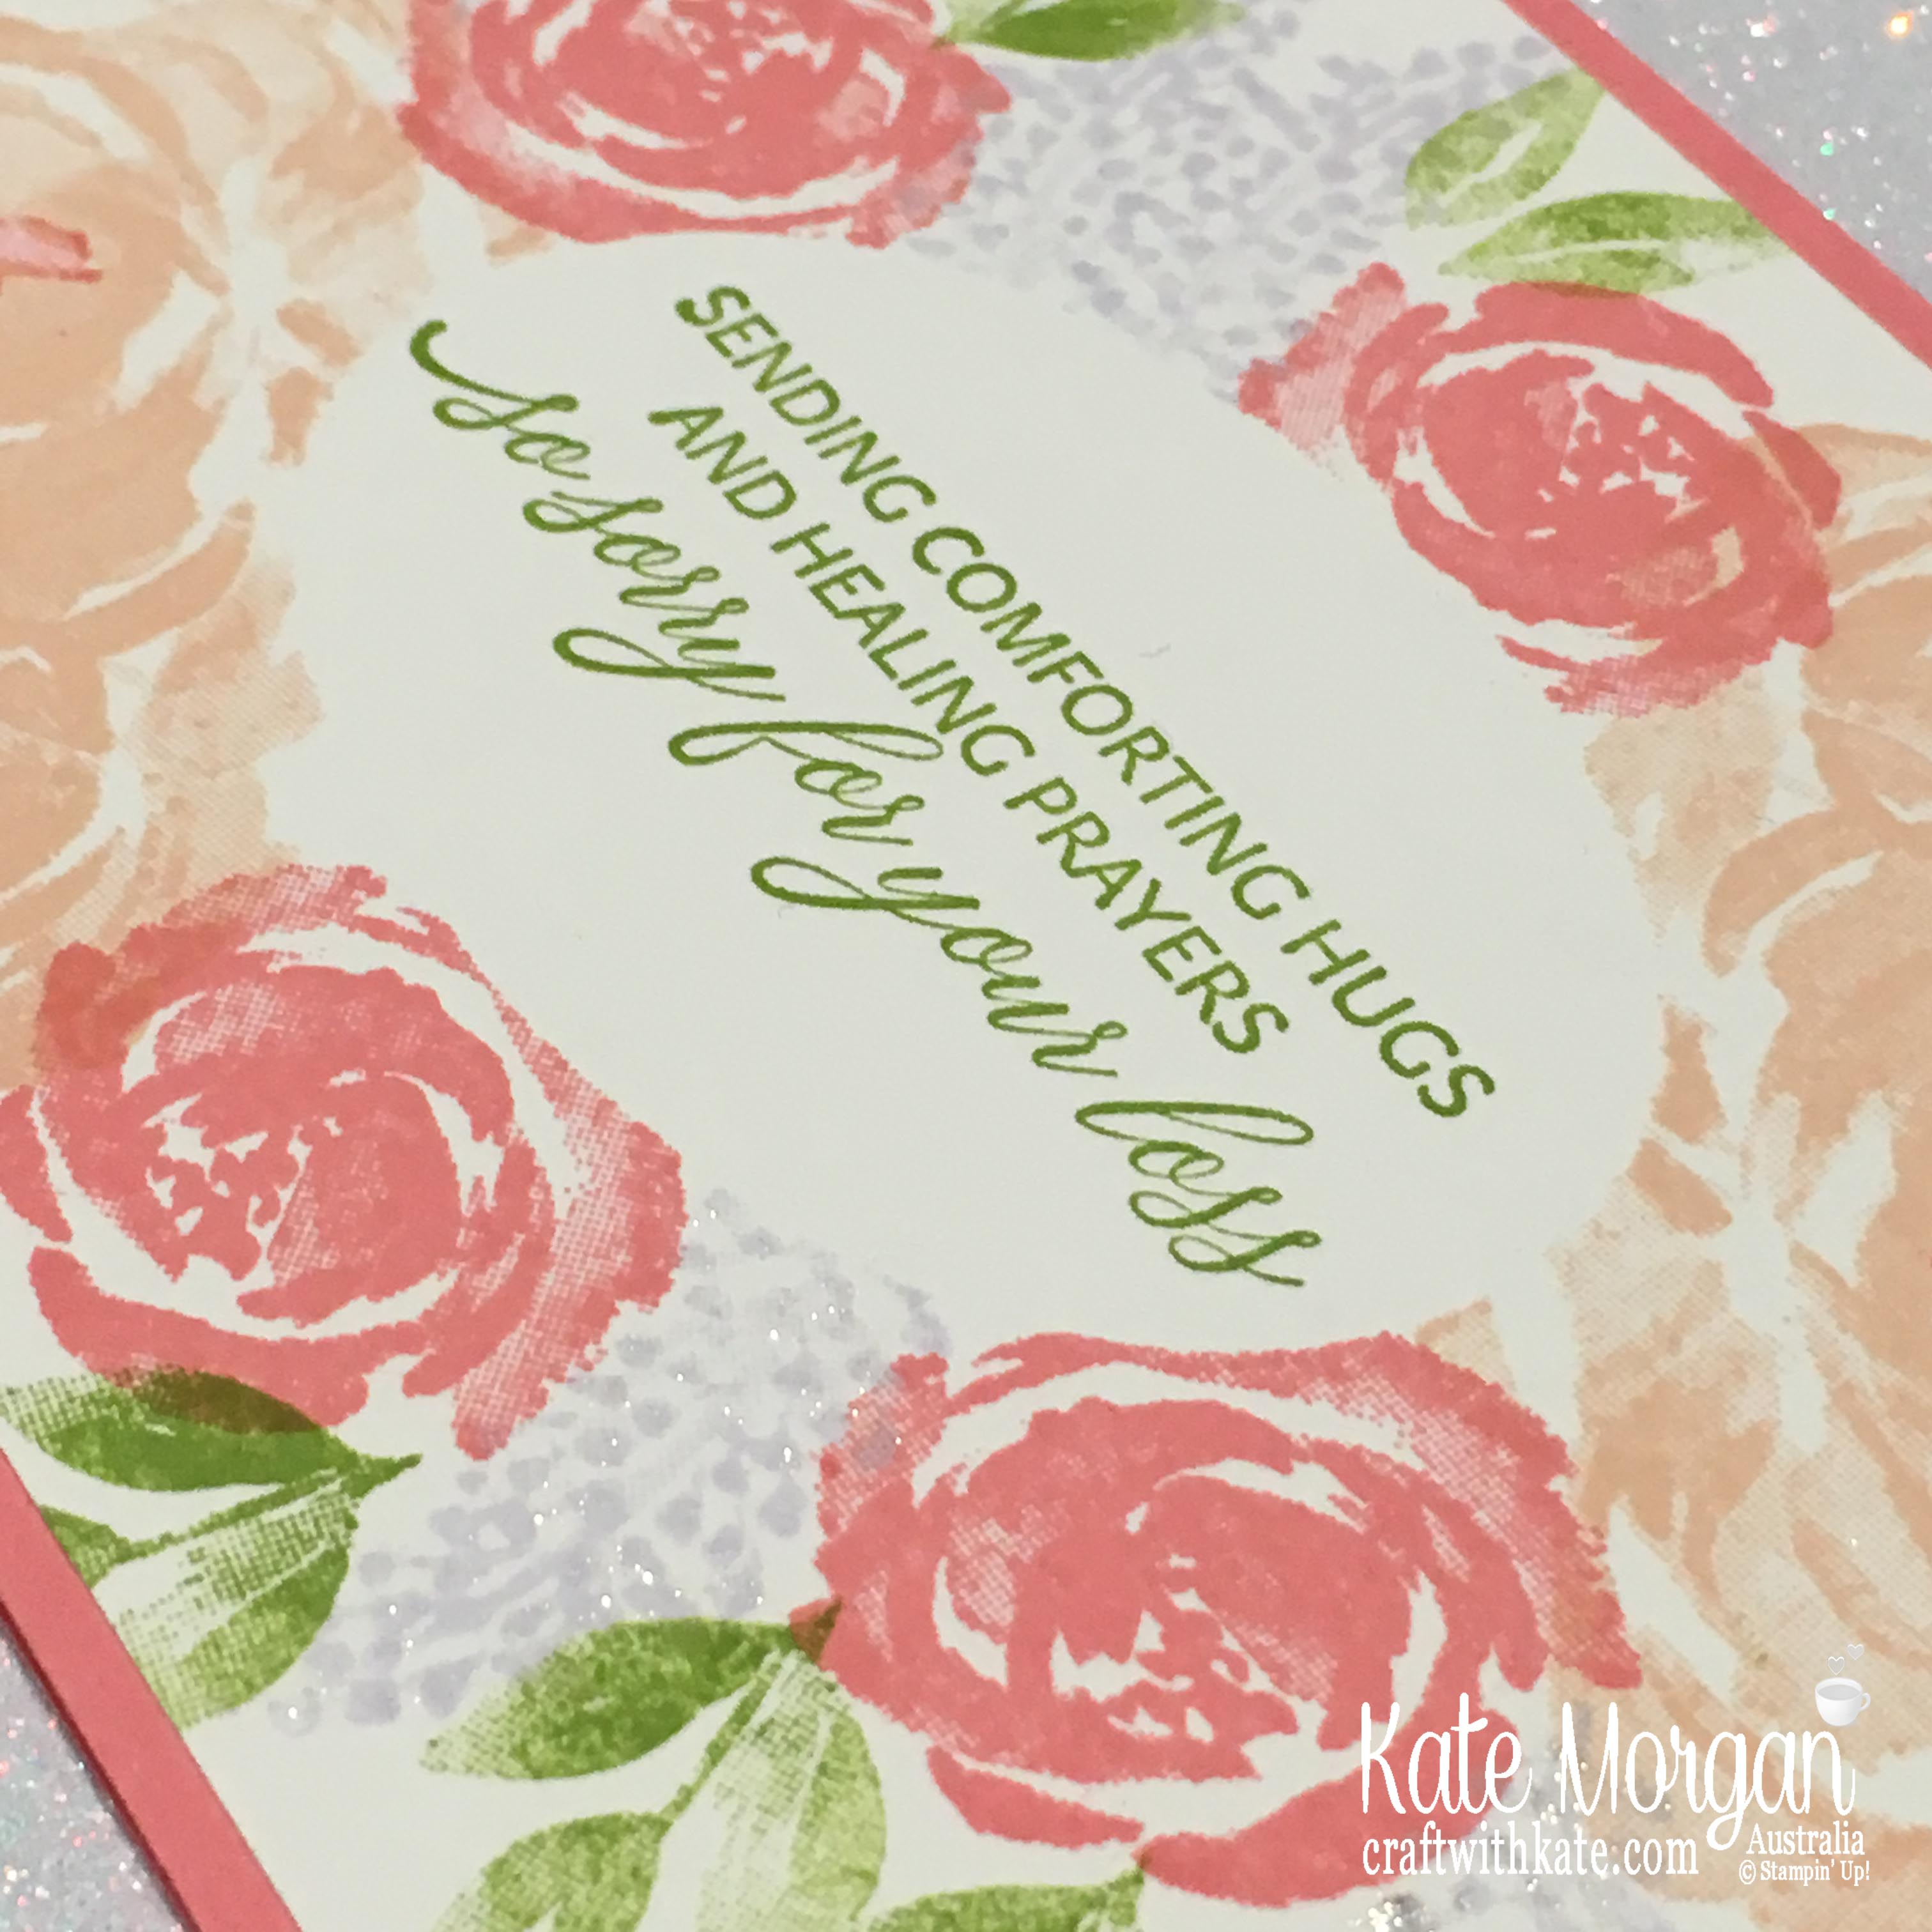 Simple Stamping using Stampin Up Beautiful Friendship & Kindness & Compassion by Kate Morgan, Australia 2019